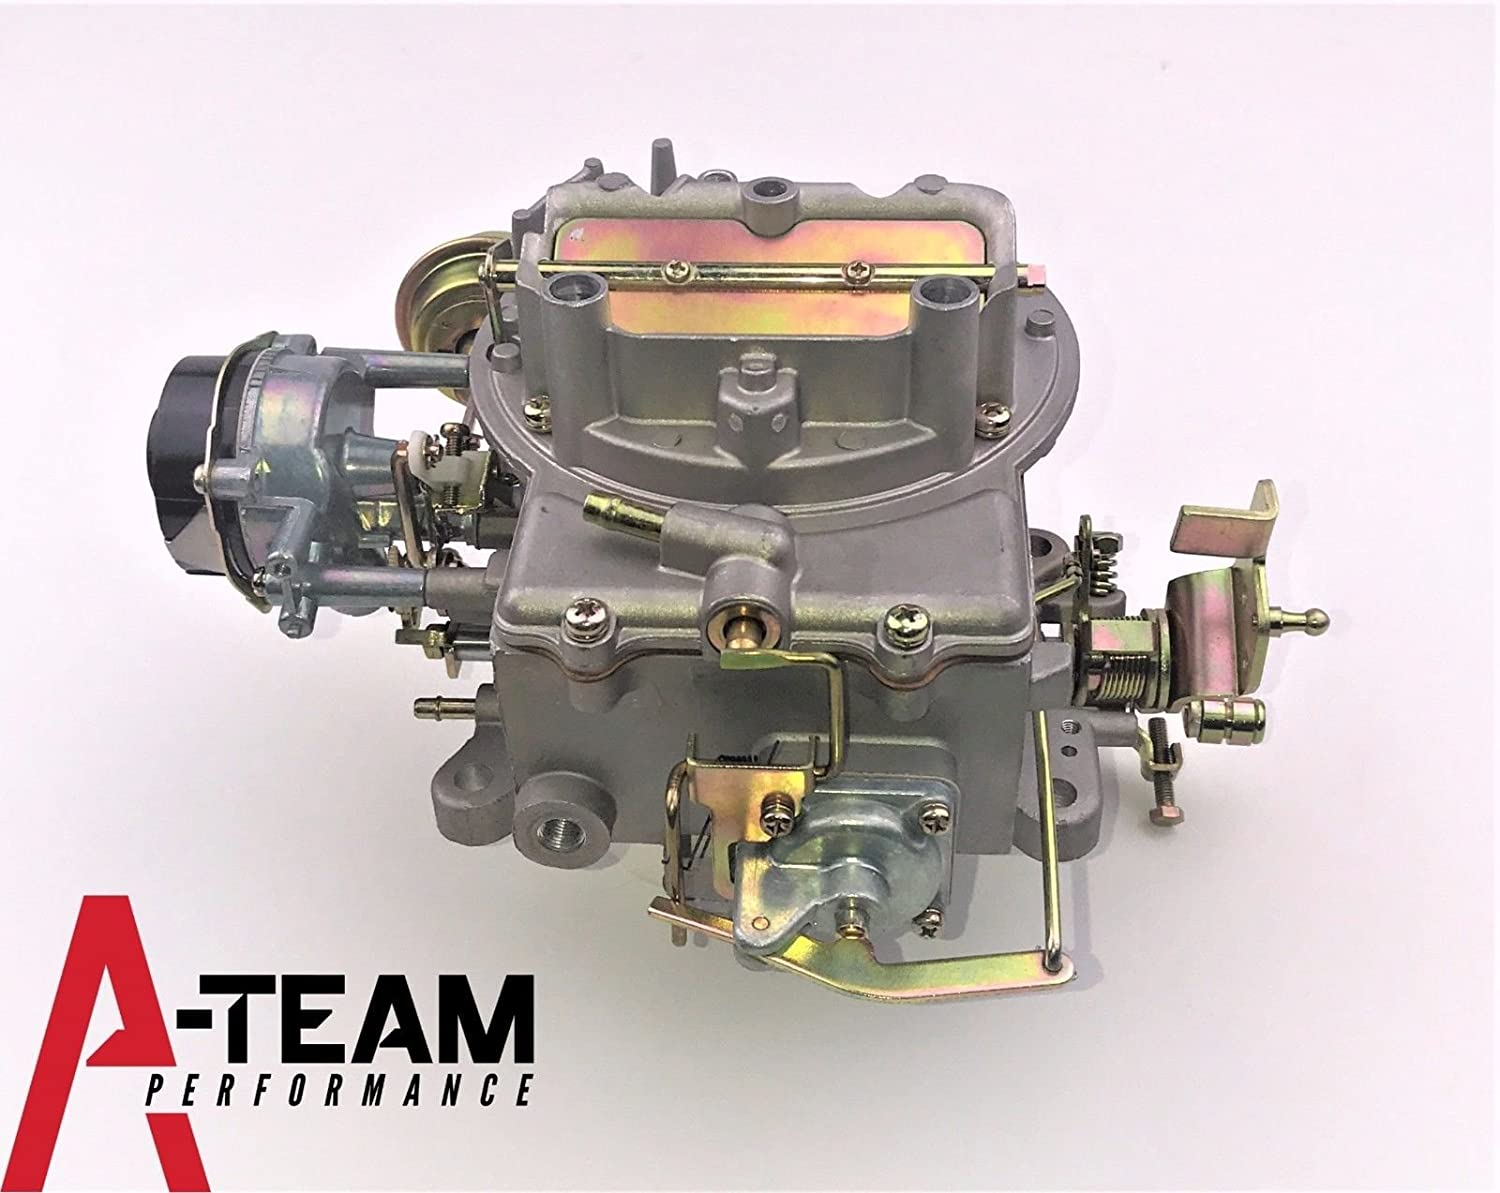 A Team Performance 154 2 Barrel Carburetor Carb 2100 Ford 289 Engine And Transmission Assembly Diagram Compatible With 302 351 Jeep 360 Ci 64 78 Automotive